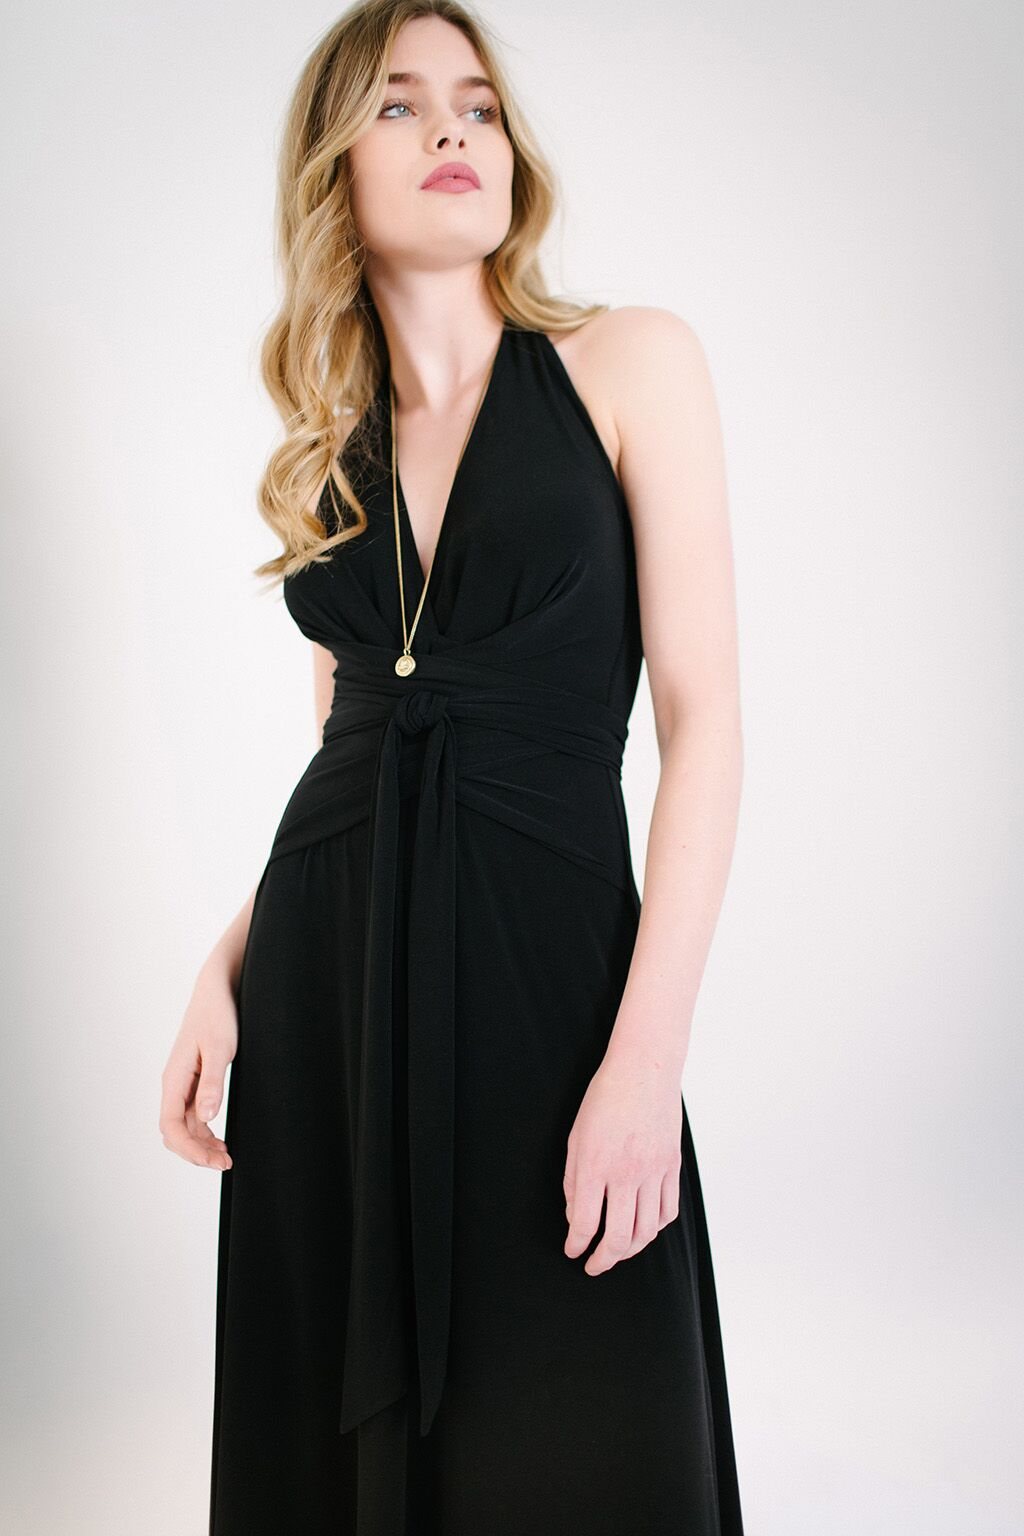 KOKOON Origami Halter Maxi Dress in Black Detail